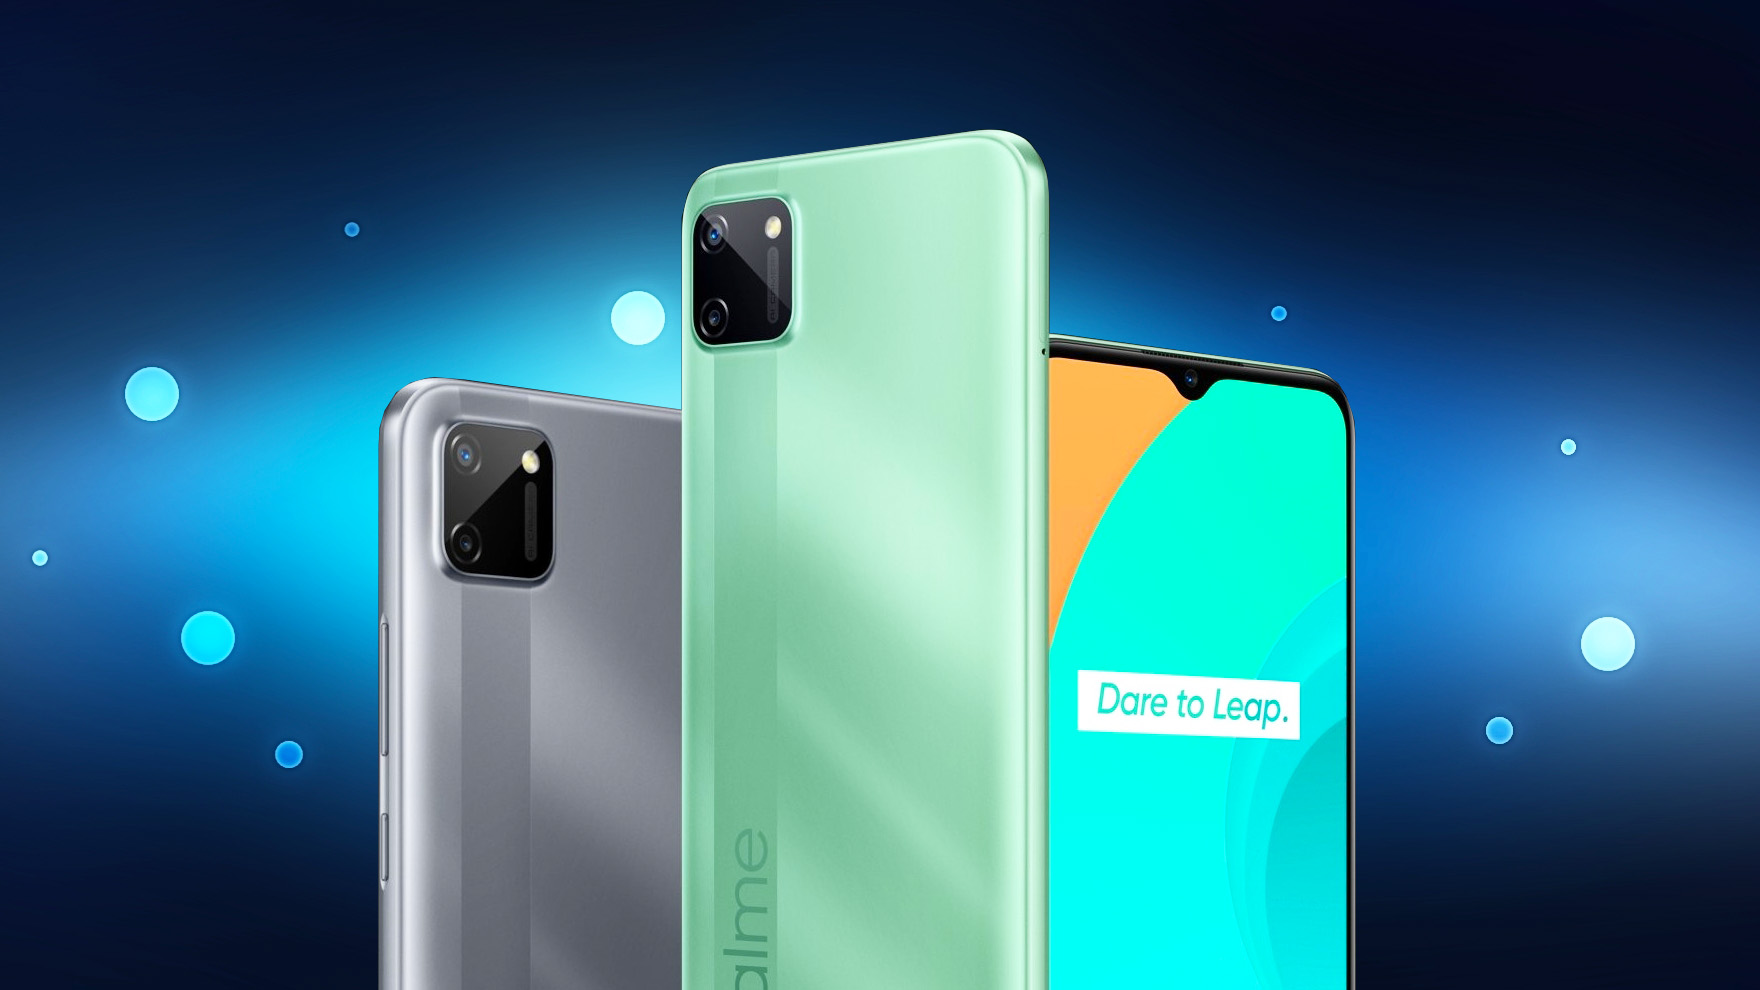 Now Realme C11 may be coming to Europe as early as possible